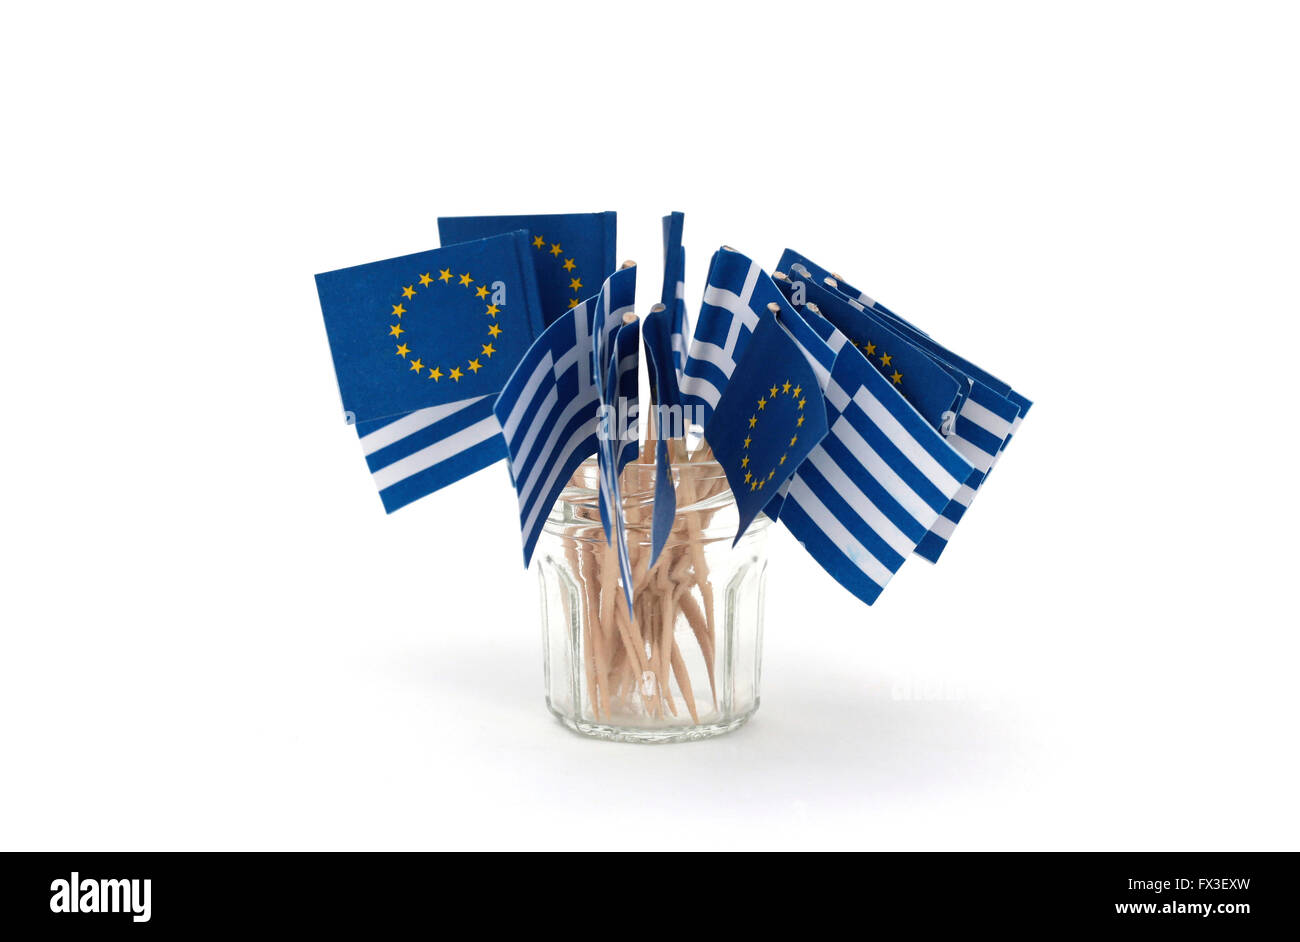 Little European and Greek flags - Stock Image